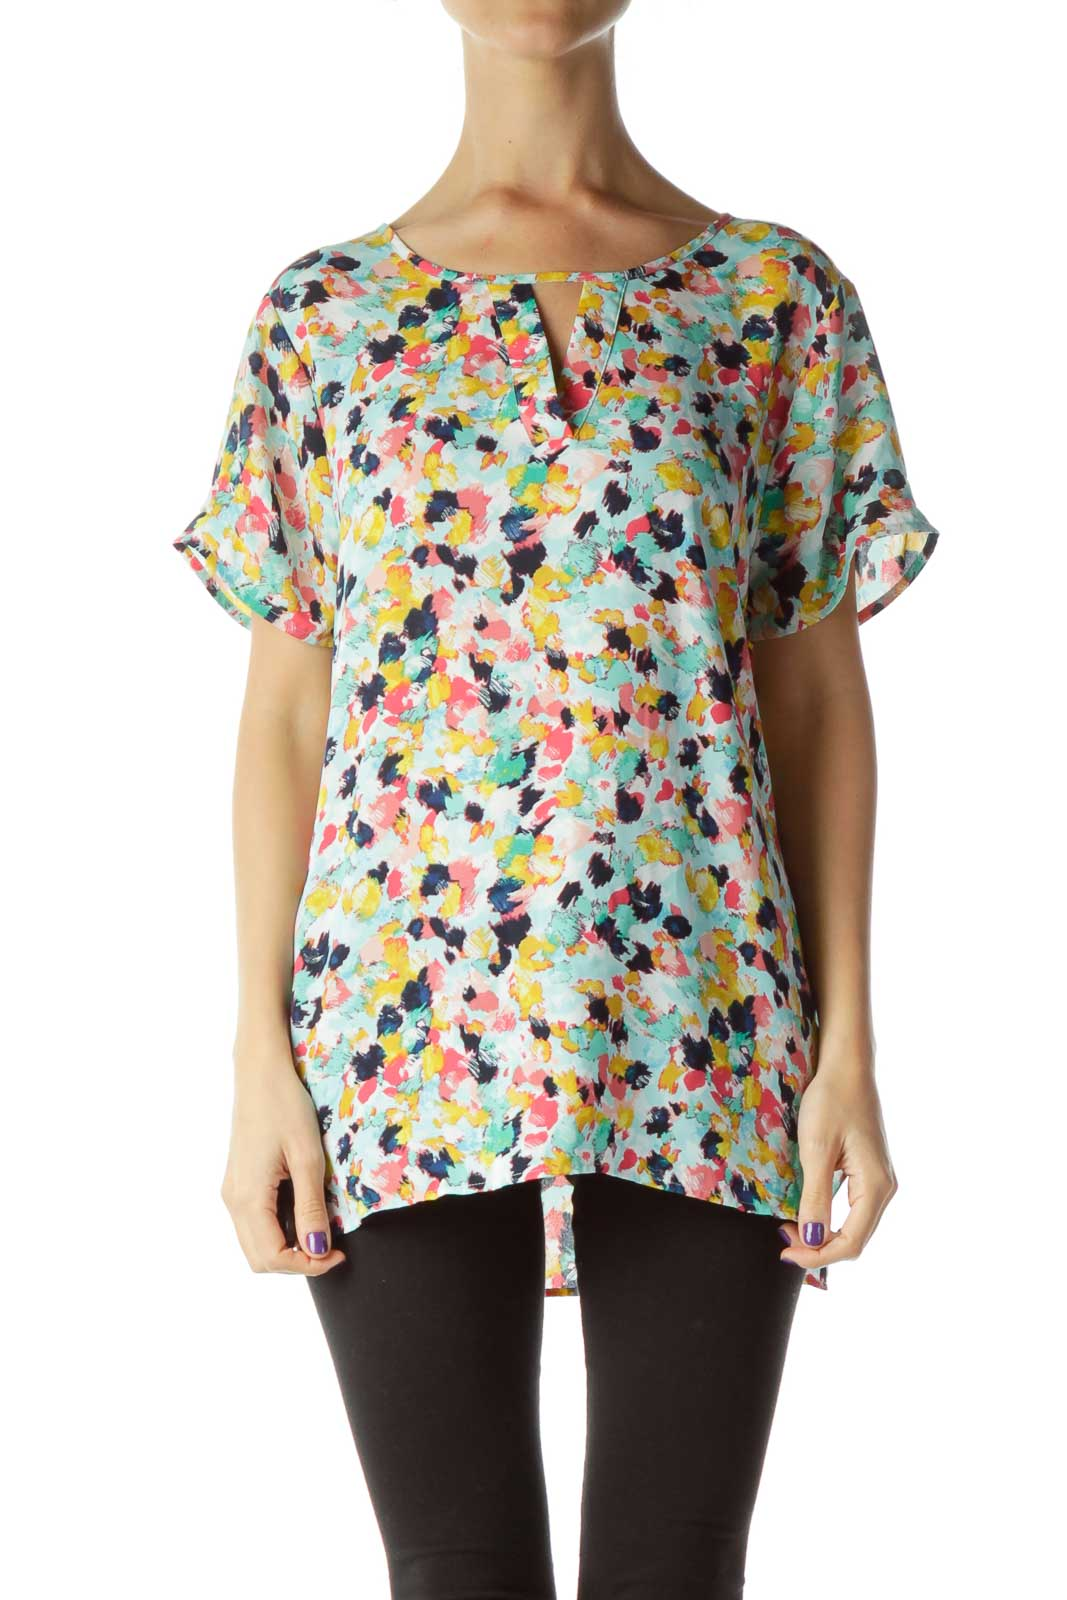 Green Blue Pink Yellow White Short-Sleeve Top Front